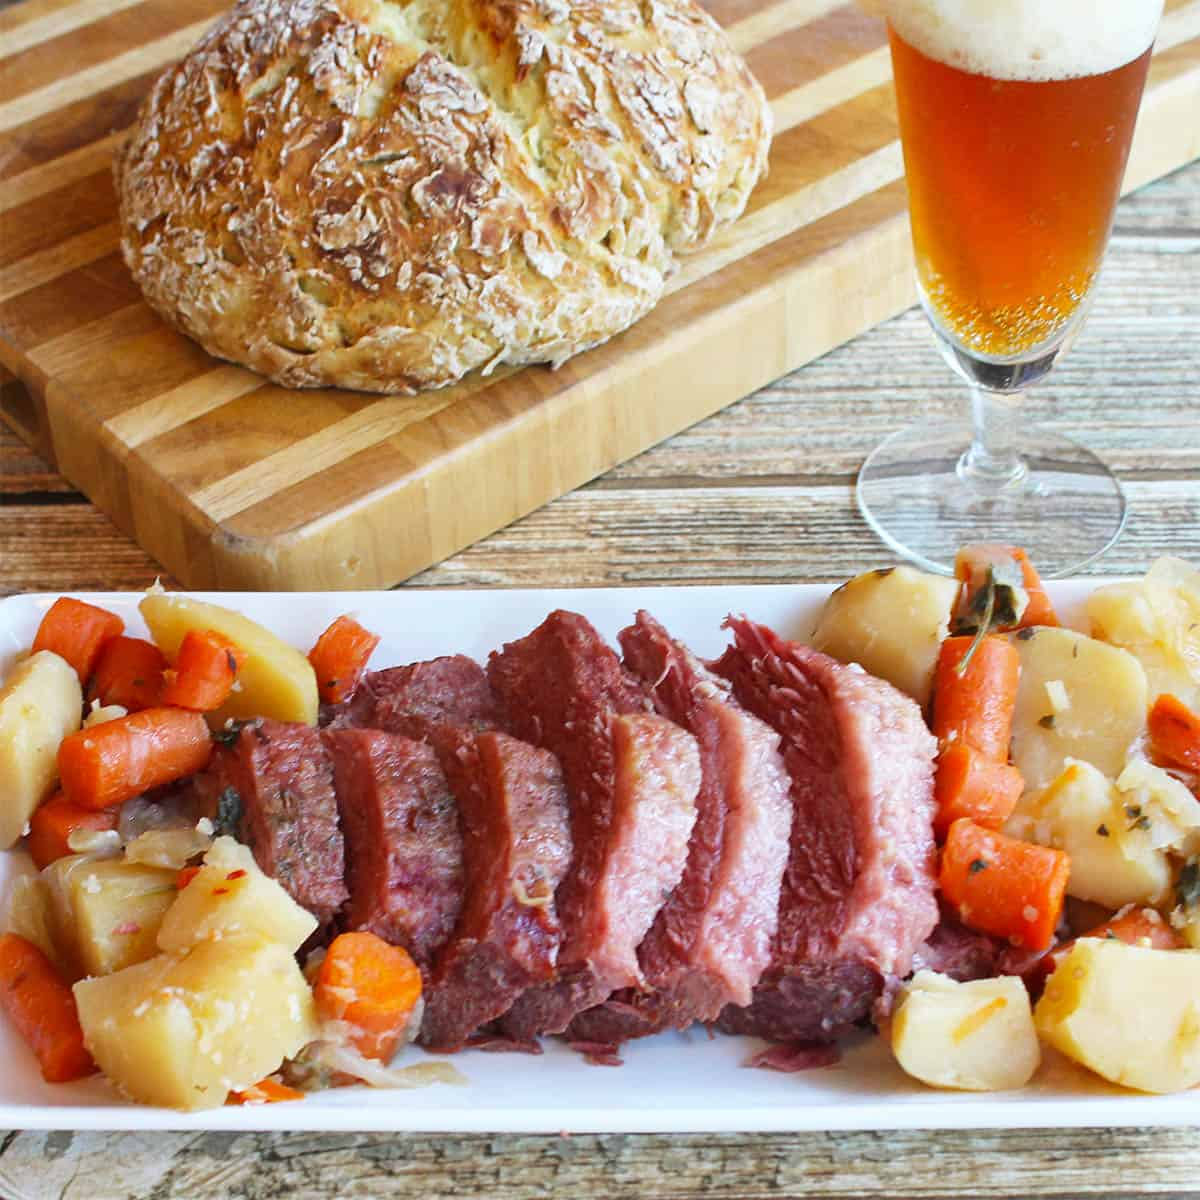 Corned beef dinner on platter with beer and Irish soda bread in background.